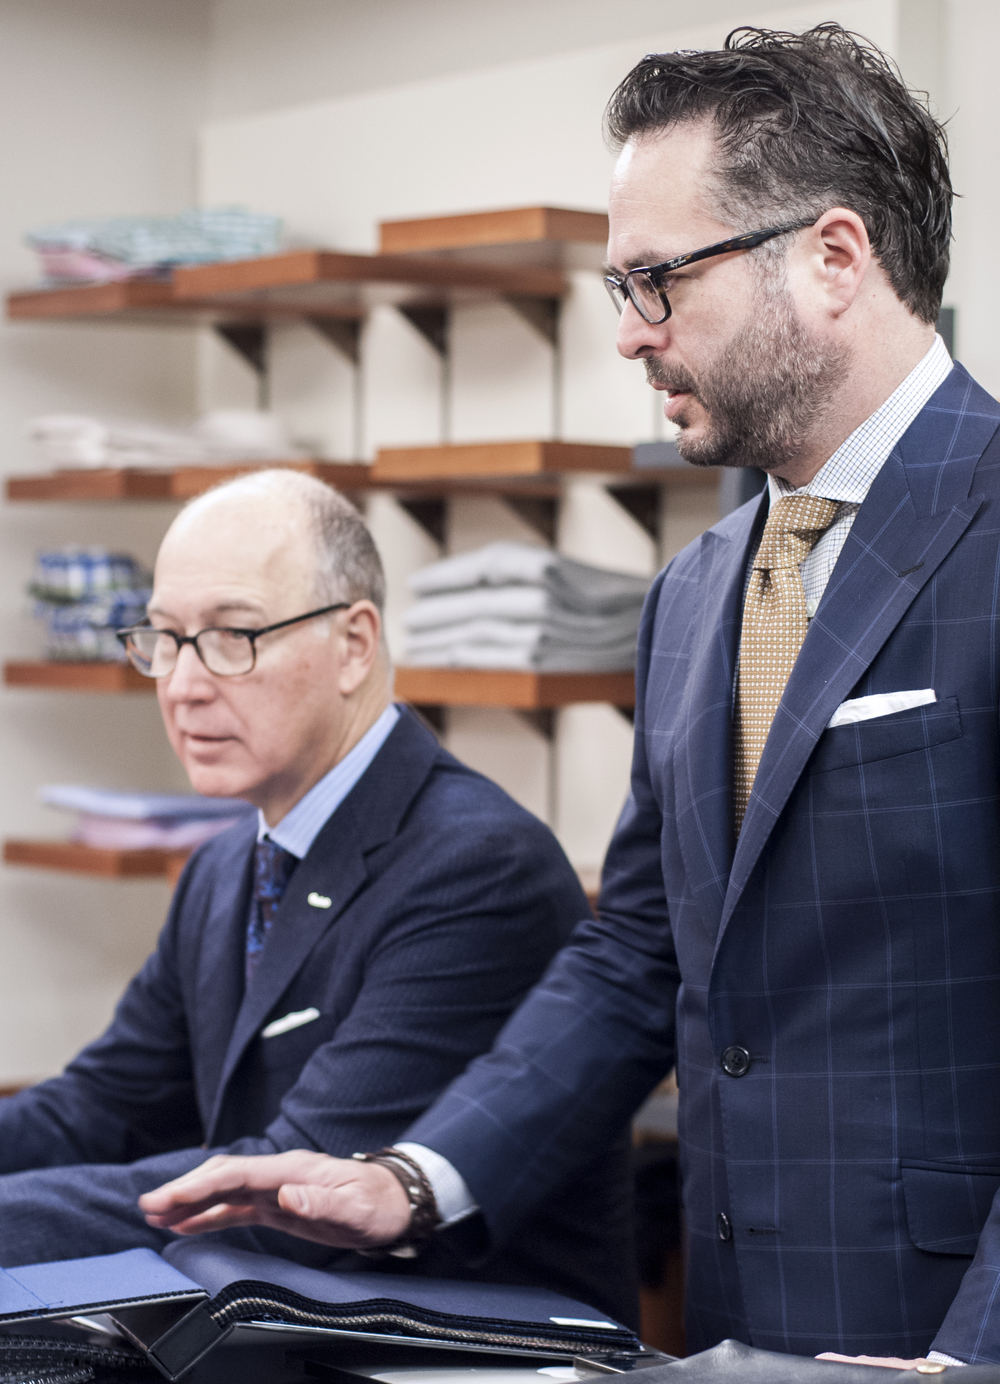 Bob Denton, President of Oxxford  (pictured left), and Chris Brueckner, Vice President of Sales, talk about luxury fabrics and staying faithful to quality.